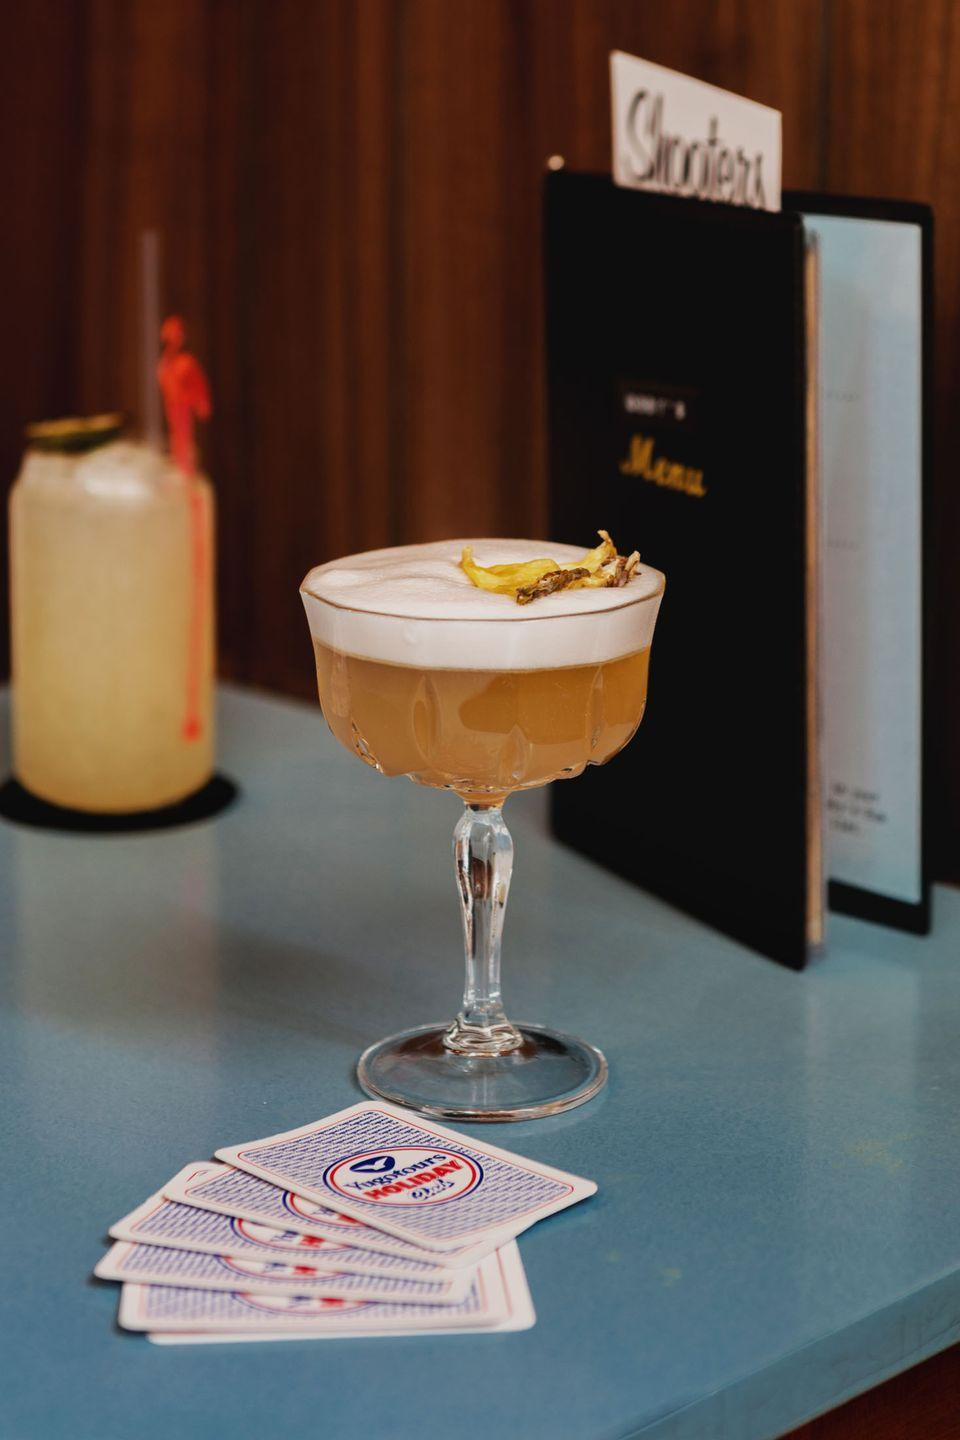 <p>This cocktail bar is extremely committed to its 1970s theme. The venue is decked out just like a living room from five decades ago: Think velvet chairs (and curtains), bold, patterned wallpaper and even retro television sets placed in the corner. </p><p>The cocktail menu is split into two sections, 'Bobby's Favourites' and 'Family Affair' where each drink is named after a certain 'relative'. The venue is also known for its stone-baked, Italian pizzas and now offers bottomless brunch.</p><p>Find Bobby Fitzpatrick at 273 West End Ln.</p>